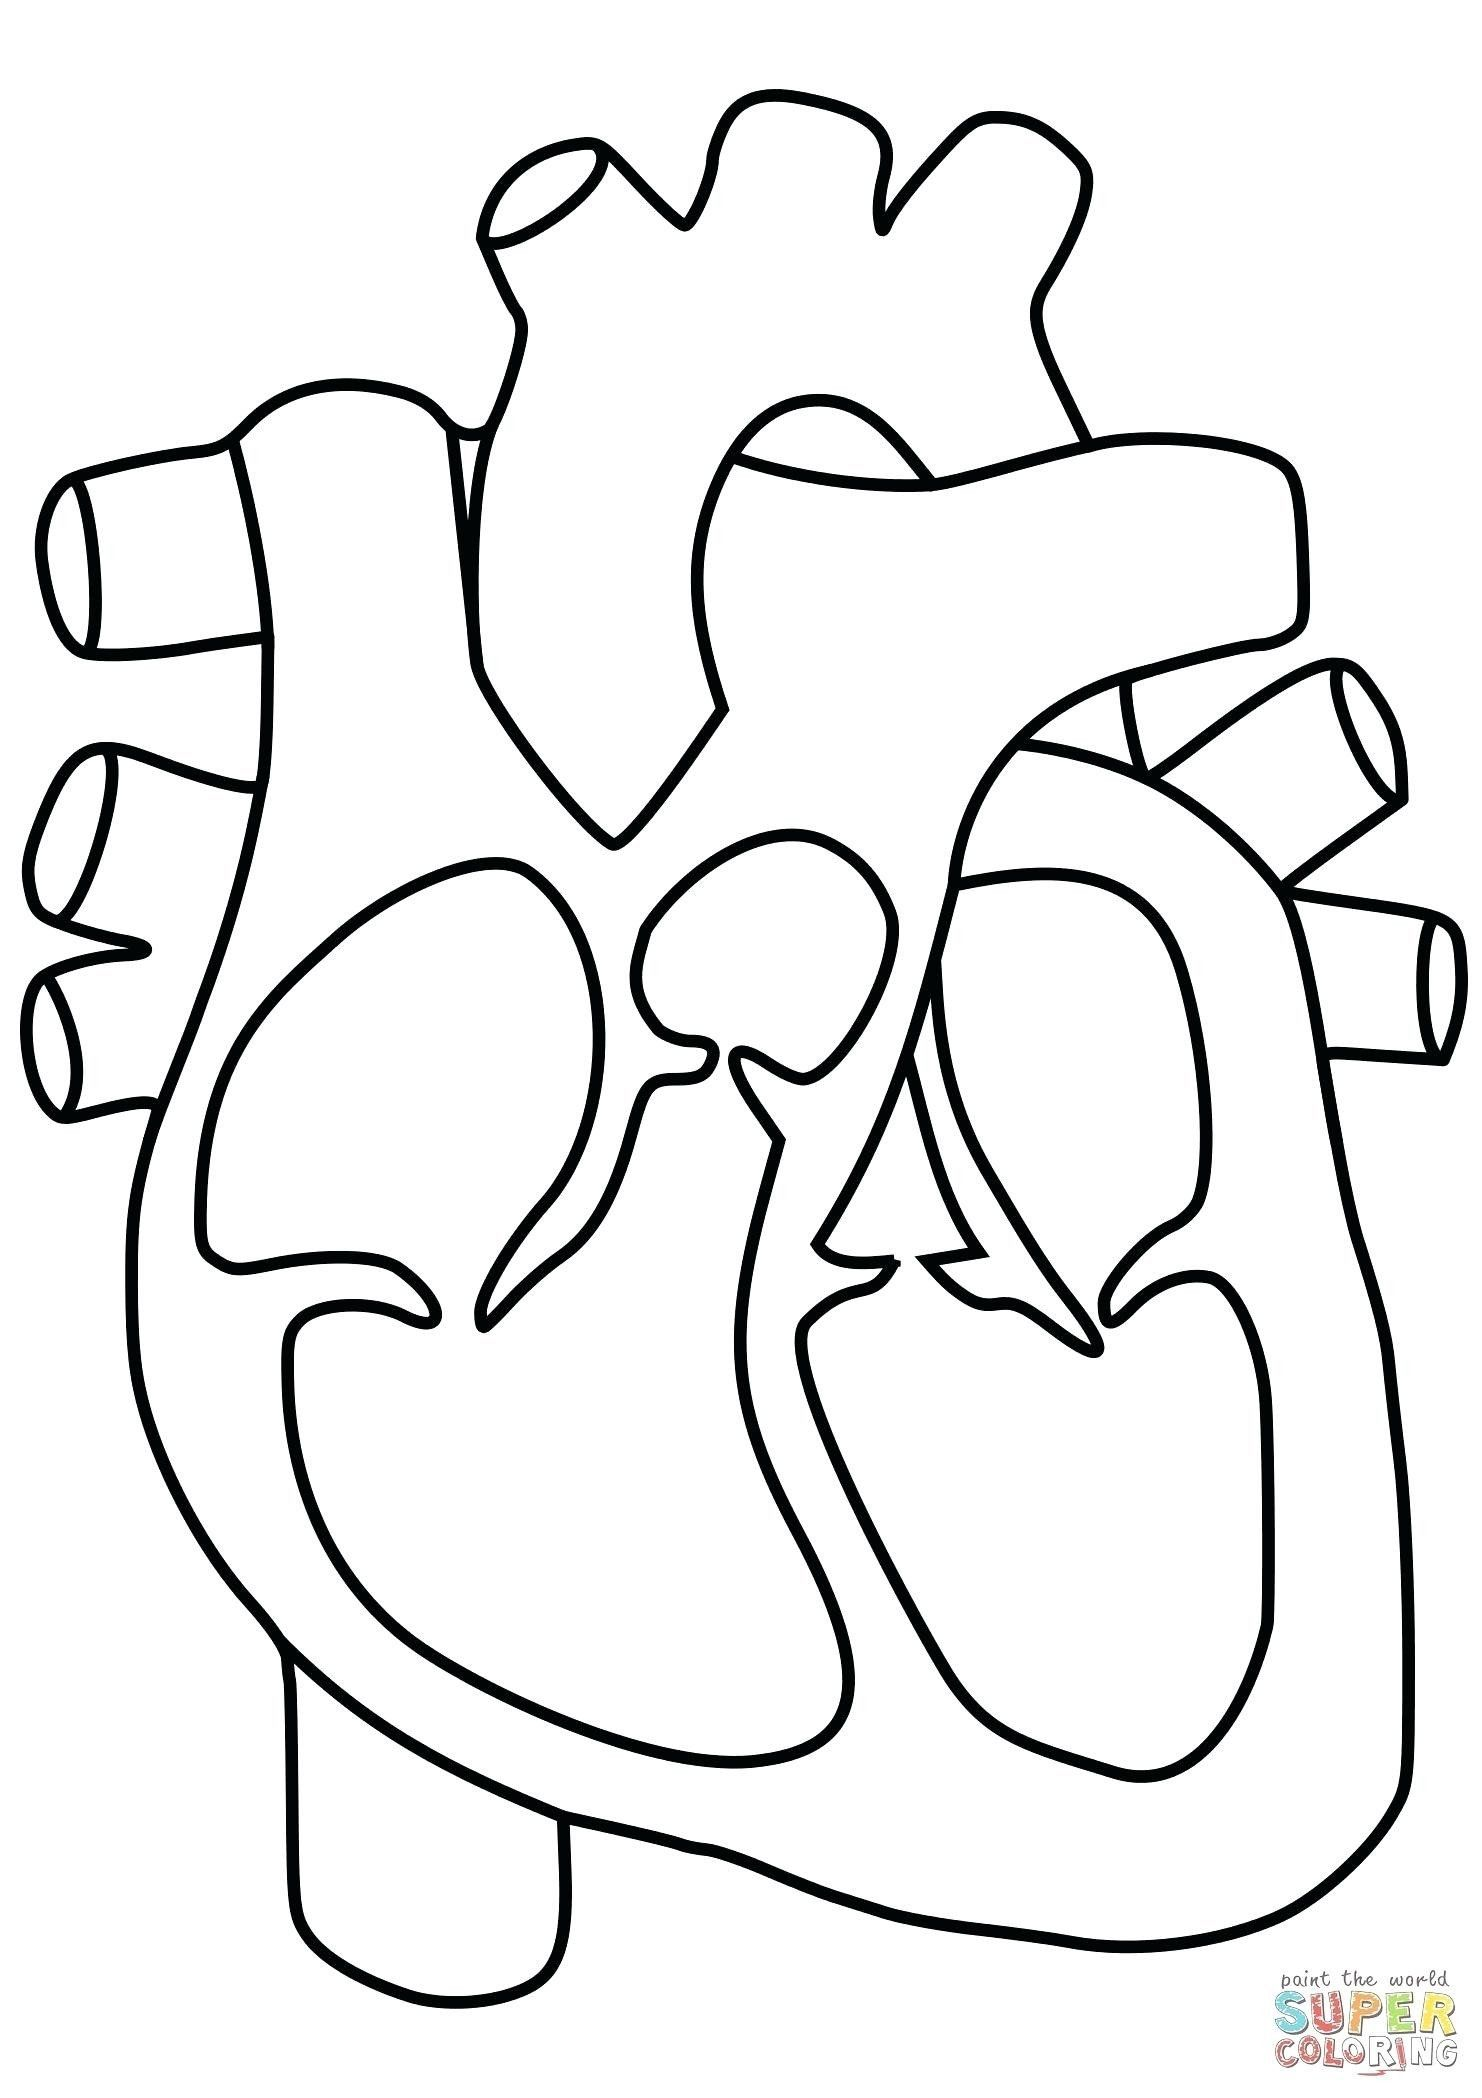 Veterinary Anatomy Coloring Book Awesome Veterinary Coloring Pages Highendpaper Heart Coloring Pages Free Printable Coloring Pages Anatomy Coloring Book